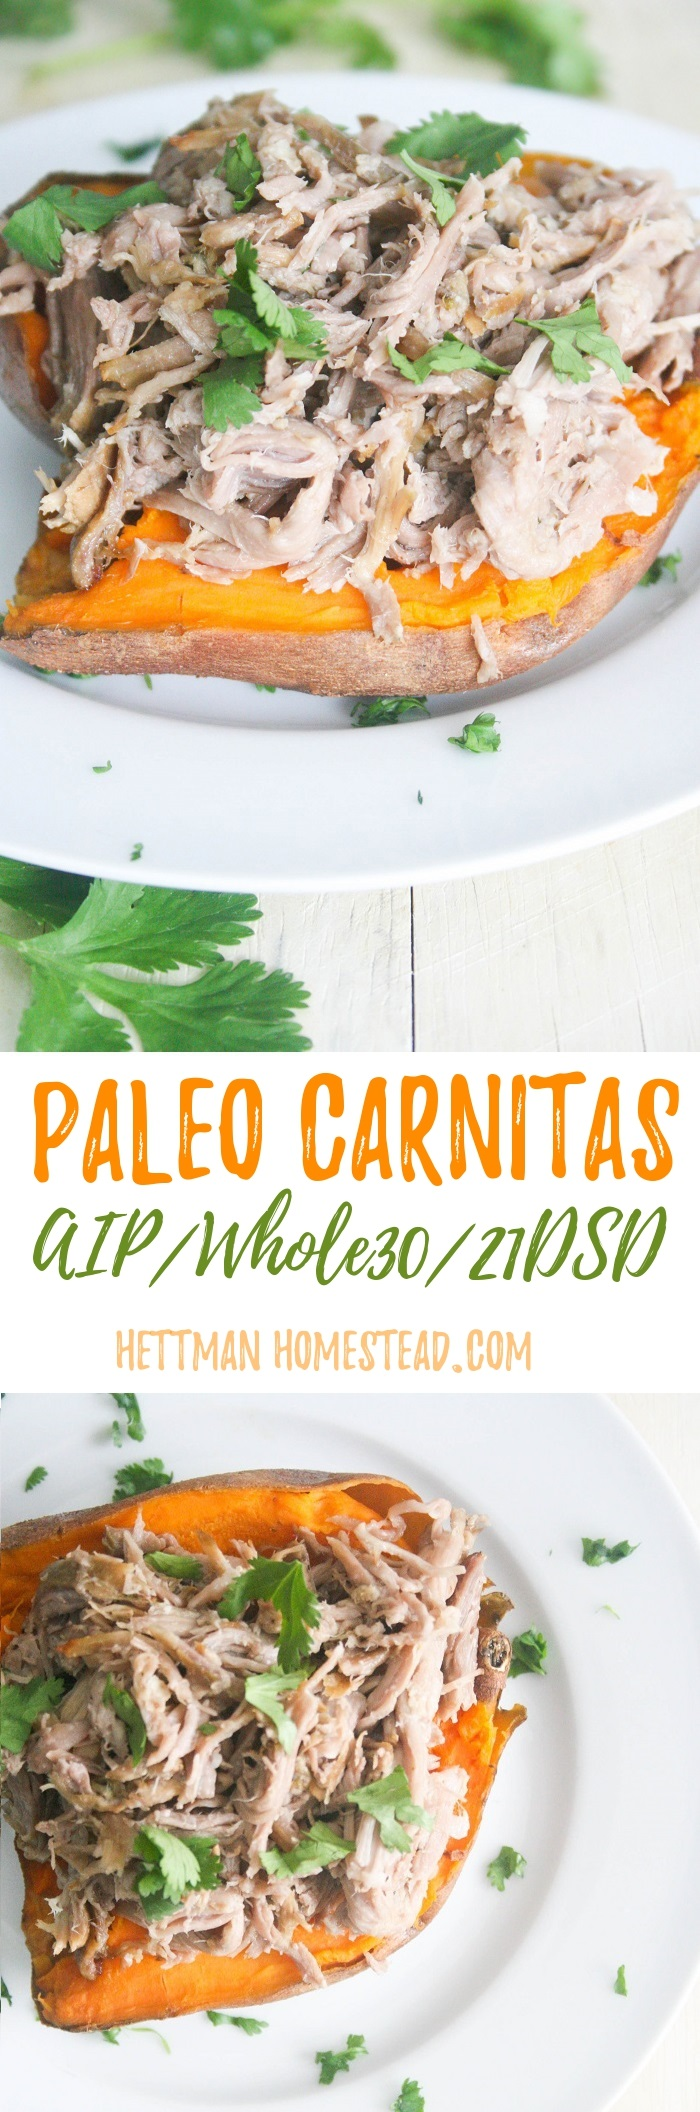 Paleo Carnitas- Hettman Homestead